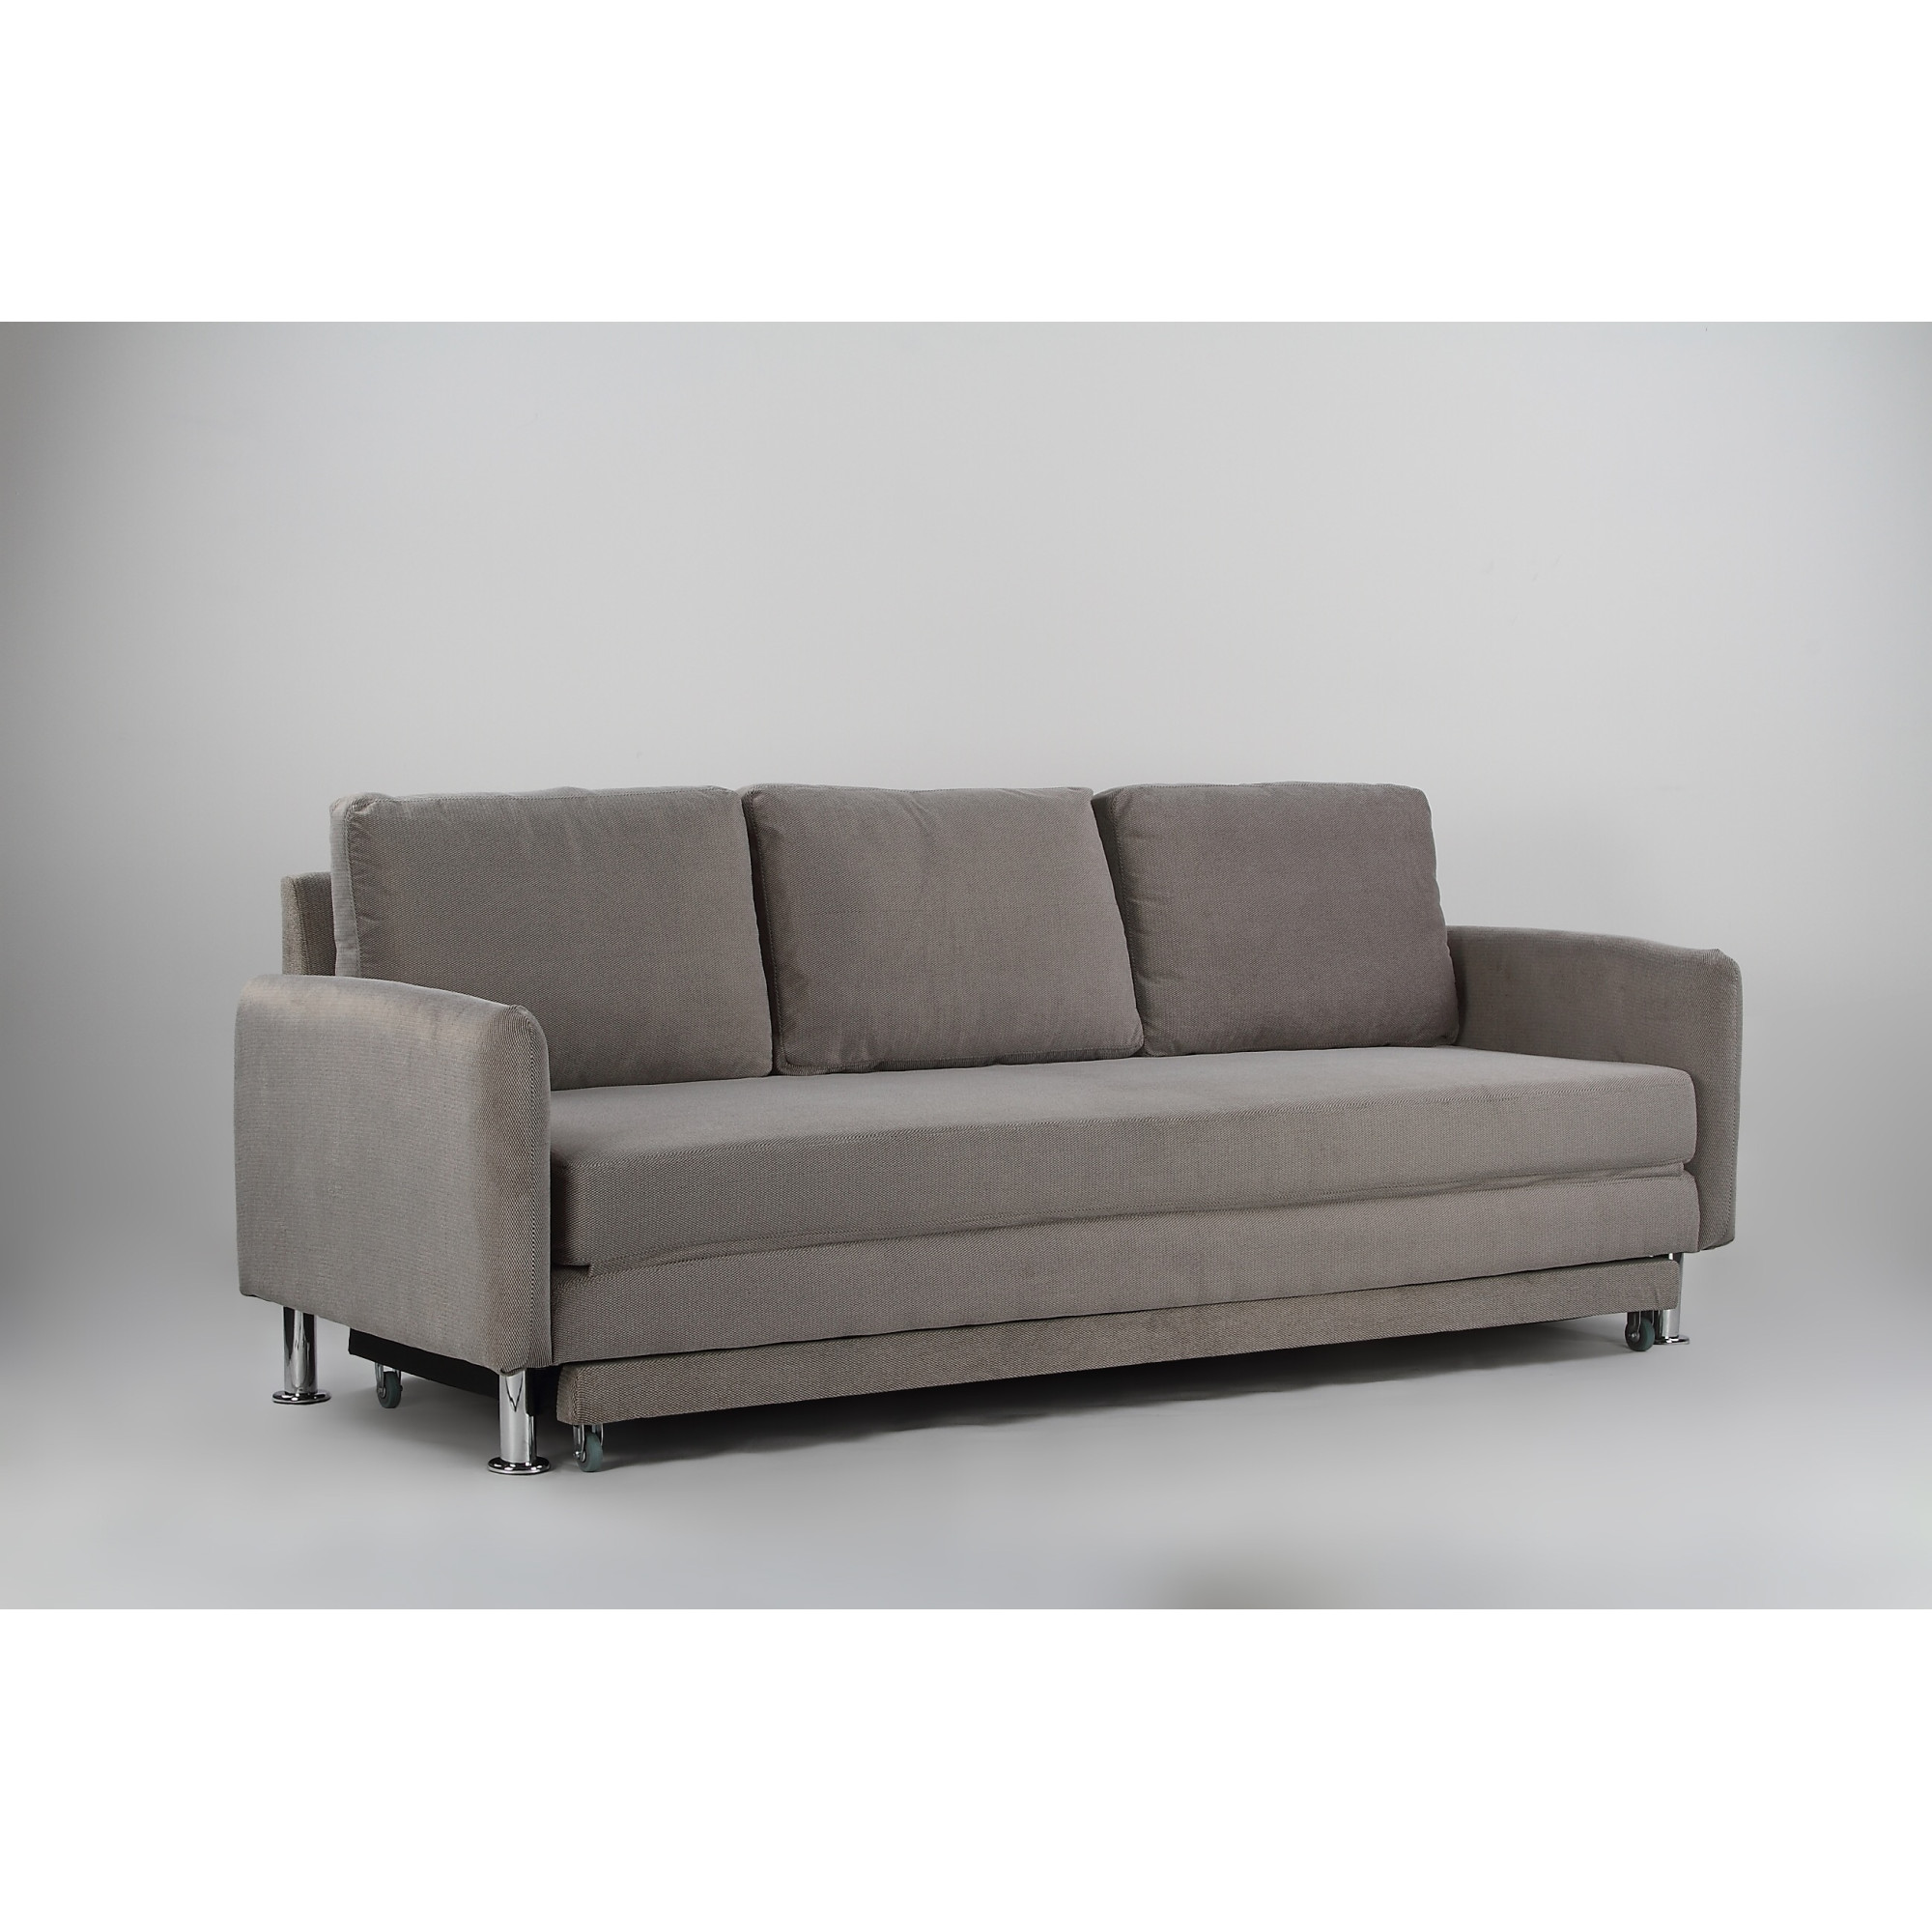 Cozy 3 Seater Pull Out Sofa Bed (Grey)